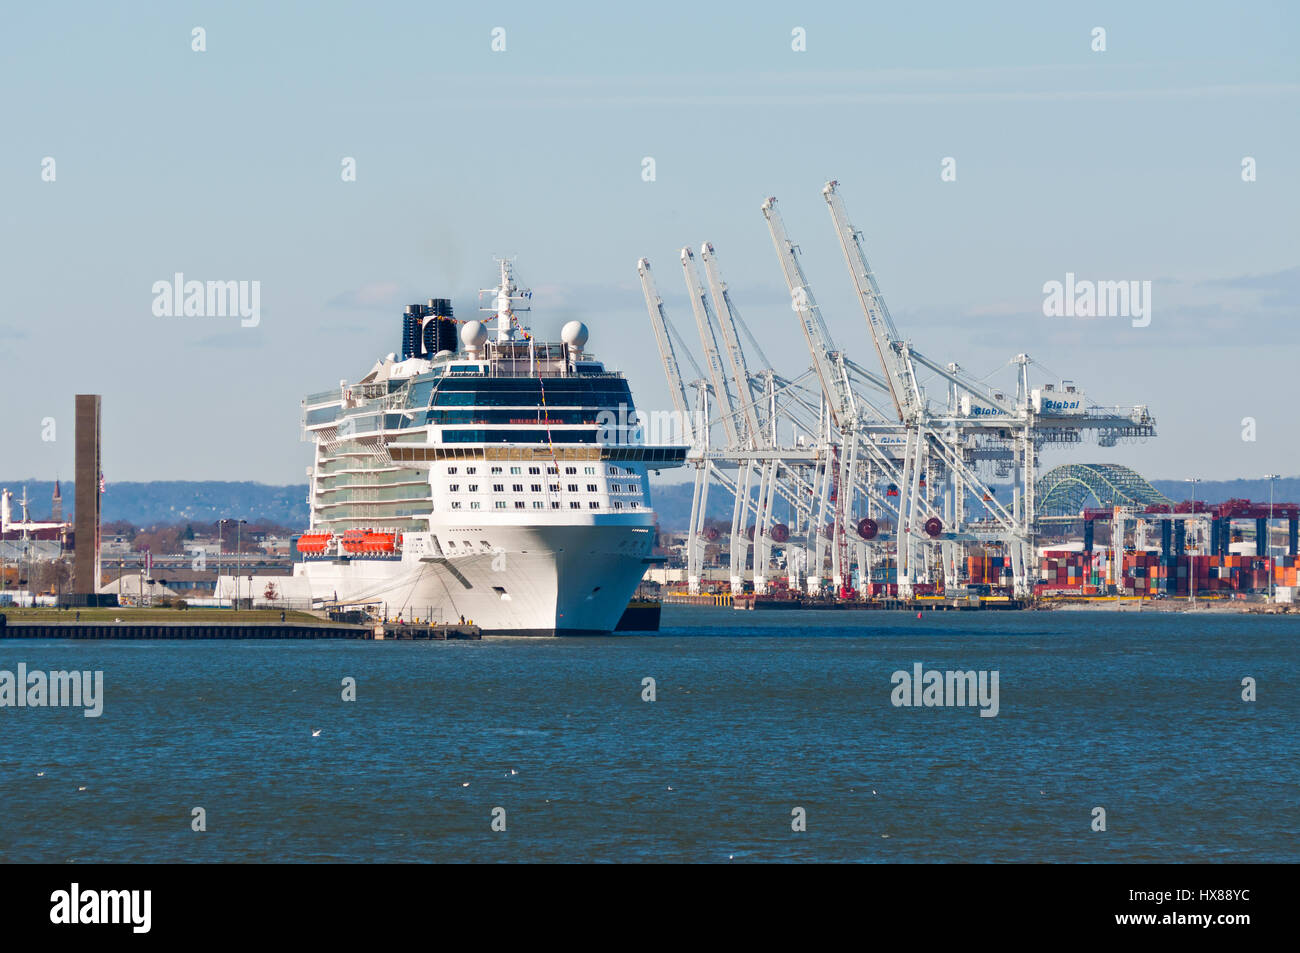 May 26th, 2019 - Cruise from Bayonne on the Celebrity Summit